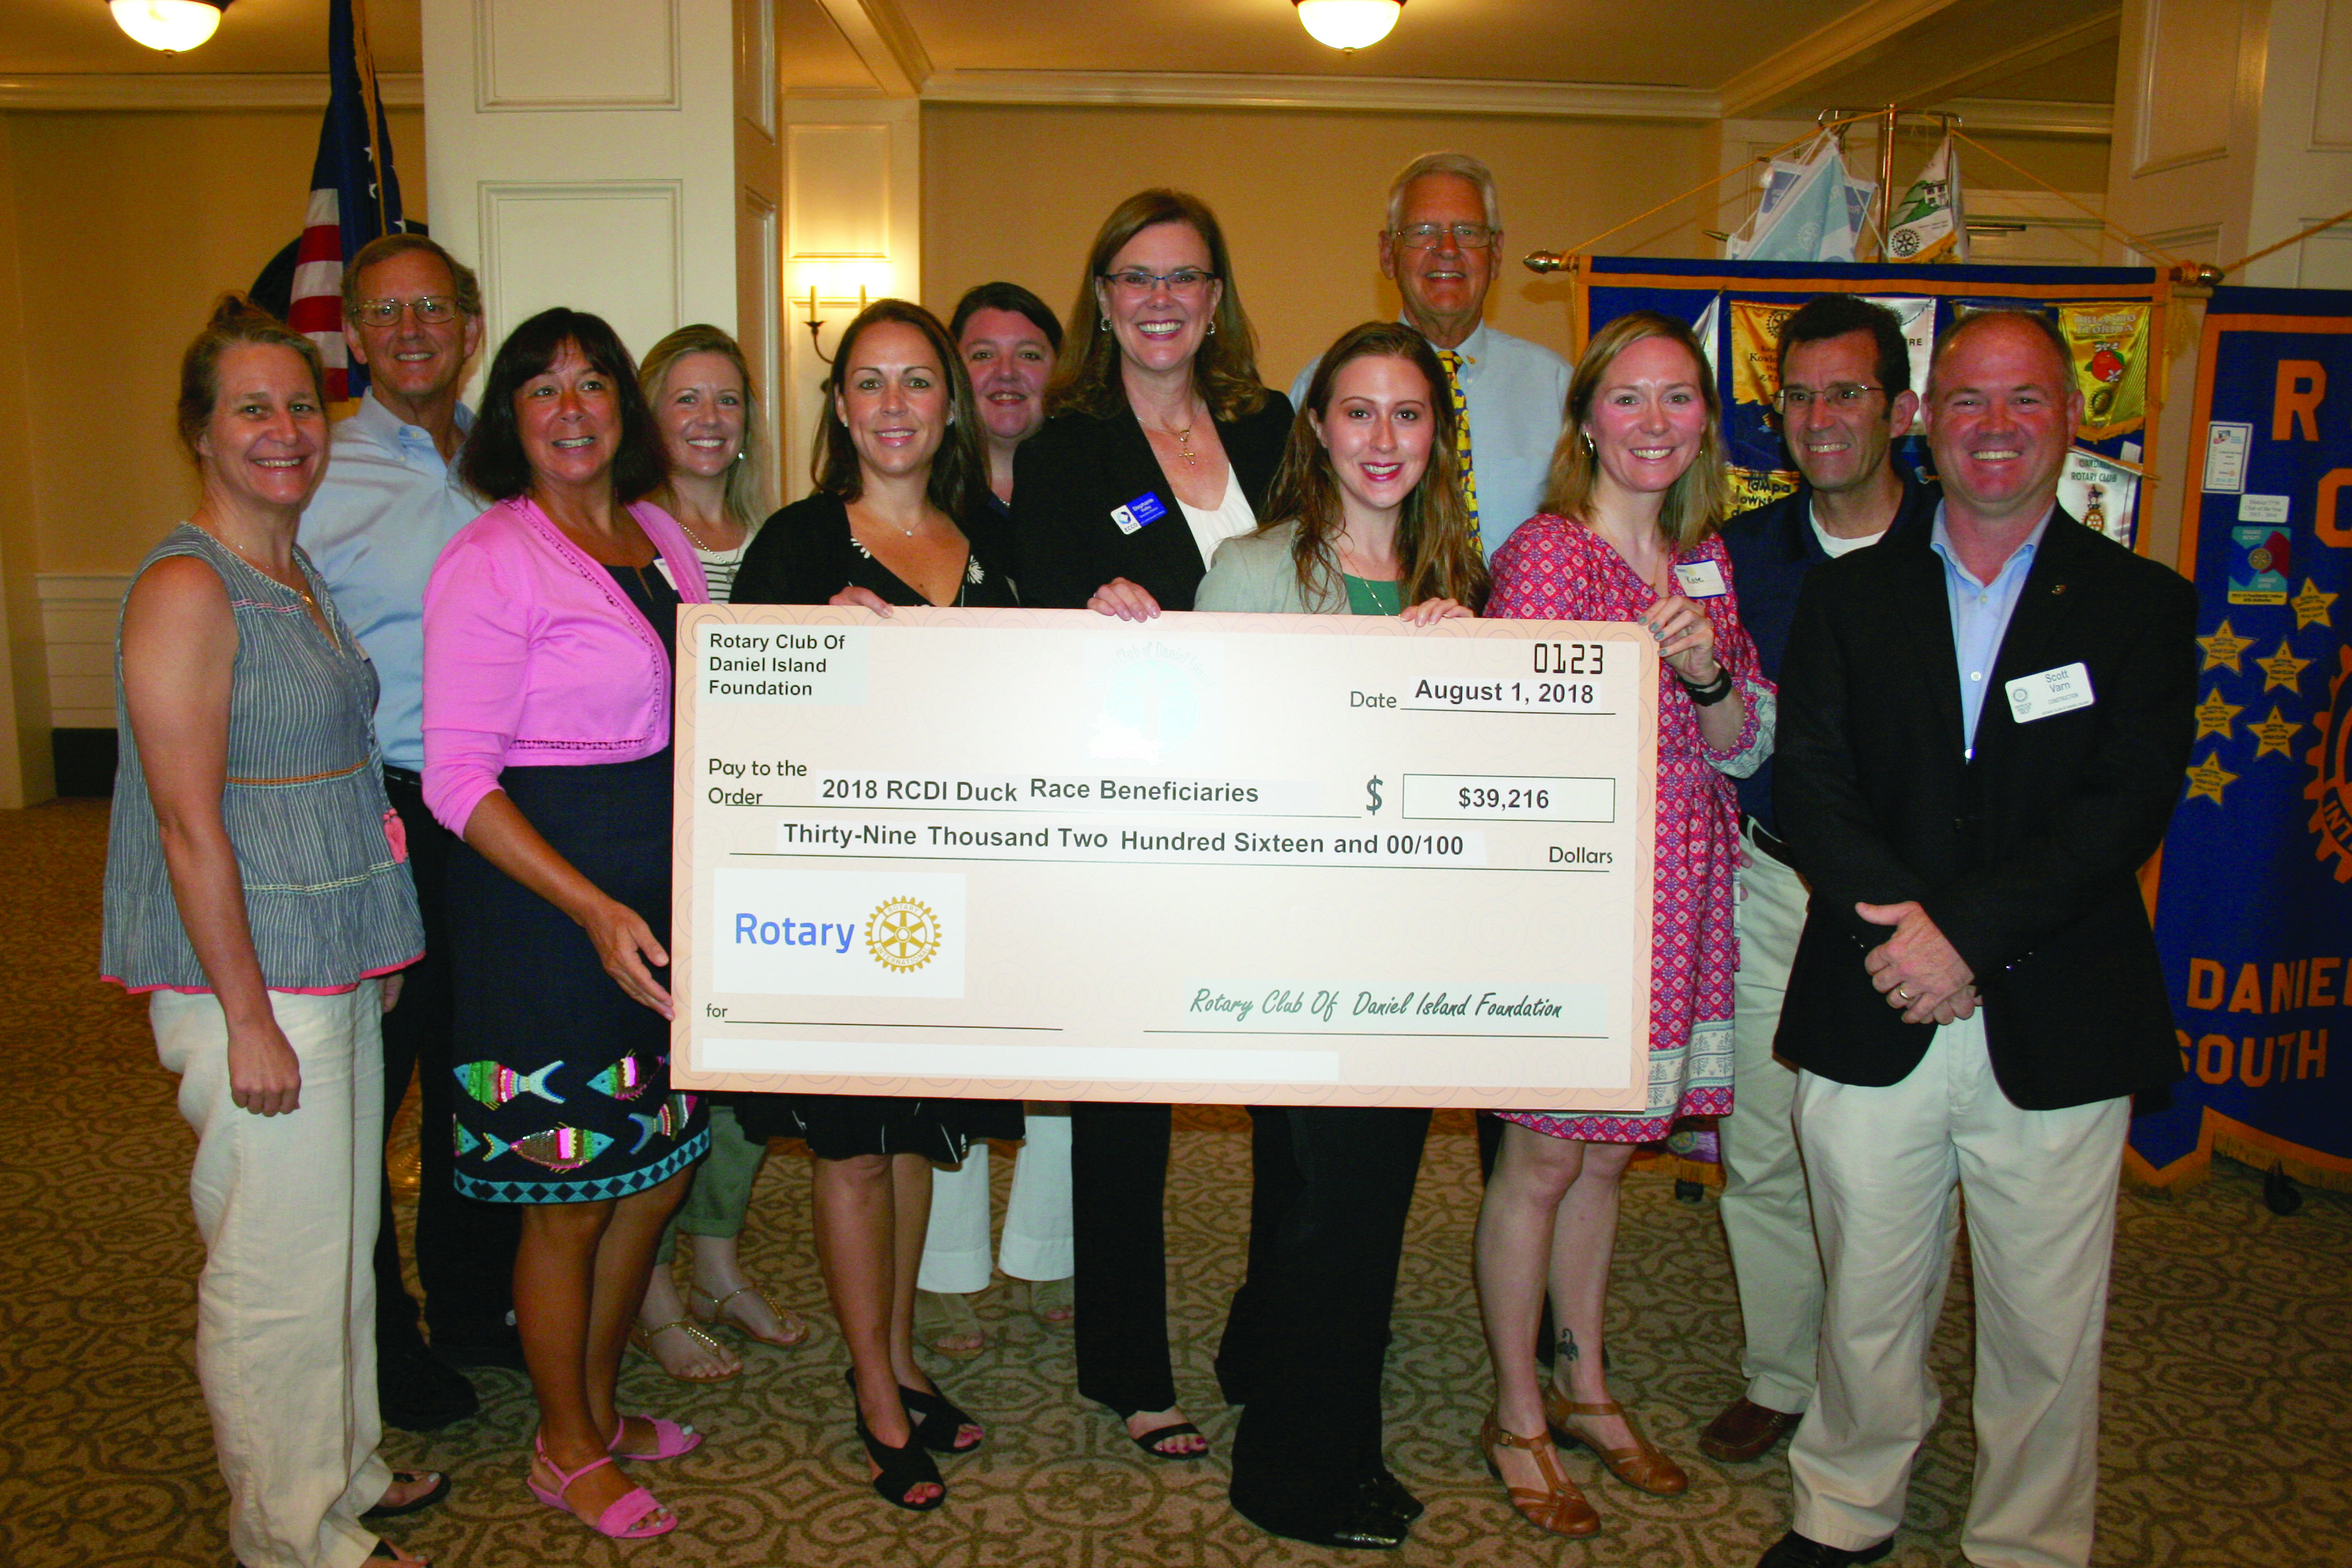 Pictured above are (left to right): Suzanne Detar, Daniel Island News (sponsor); Rick Mosteller, Spiritline Cruises (sponsor); Joannah Sampson, Cainhoy Elementary School (beneficiary); Betsy Brabham, Dockery's (sponsor); Kathleen Forbes, East Cooper Meals on Wheels (beneficiary); Jane Baker, Daniel Island Property Owners Association (sponsor); Stephanie Kelly, East Cooper Community Outreach (beneficiary); Jennifer Wilson, Camp Happy Days (beneficiary); Rotarian George Jucha, Duck Race chair; Kate Buckholz, Carolina Youth Center Development Center (beneficiary); Rob Fowler, WCBD-News2 (sponsor); and Scott Varn, president, Rotary Club of Daniel Island.